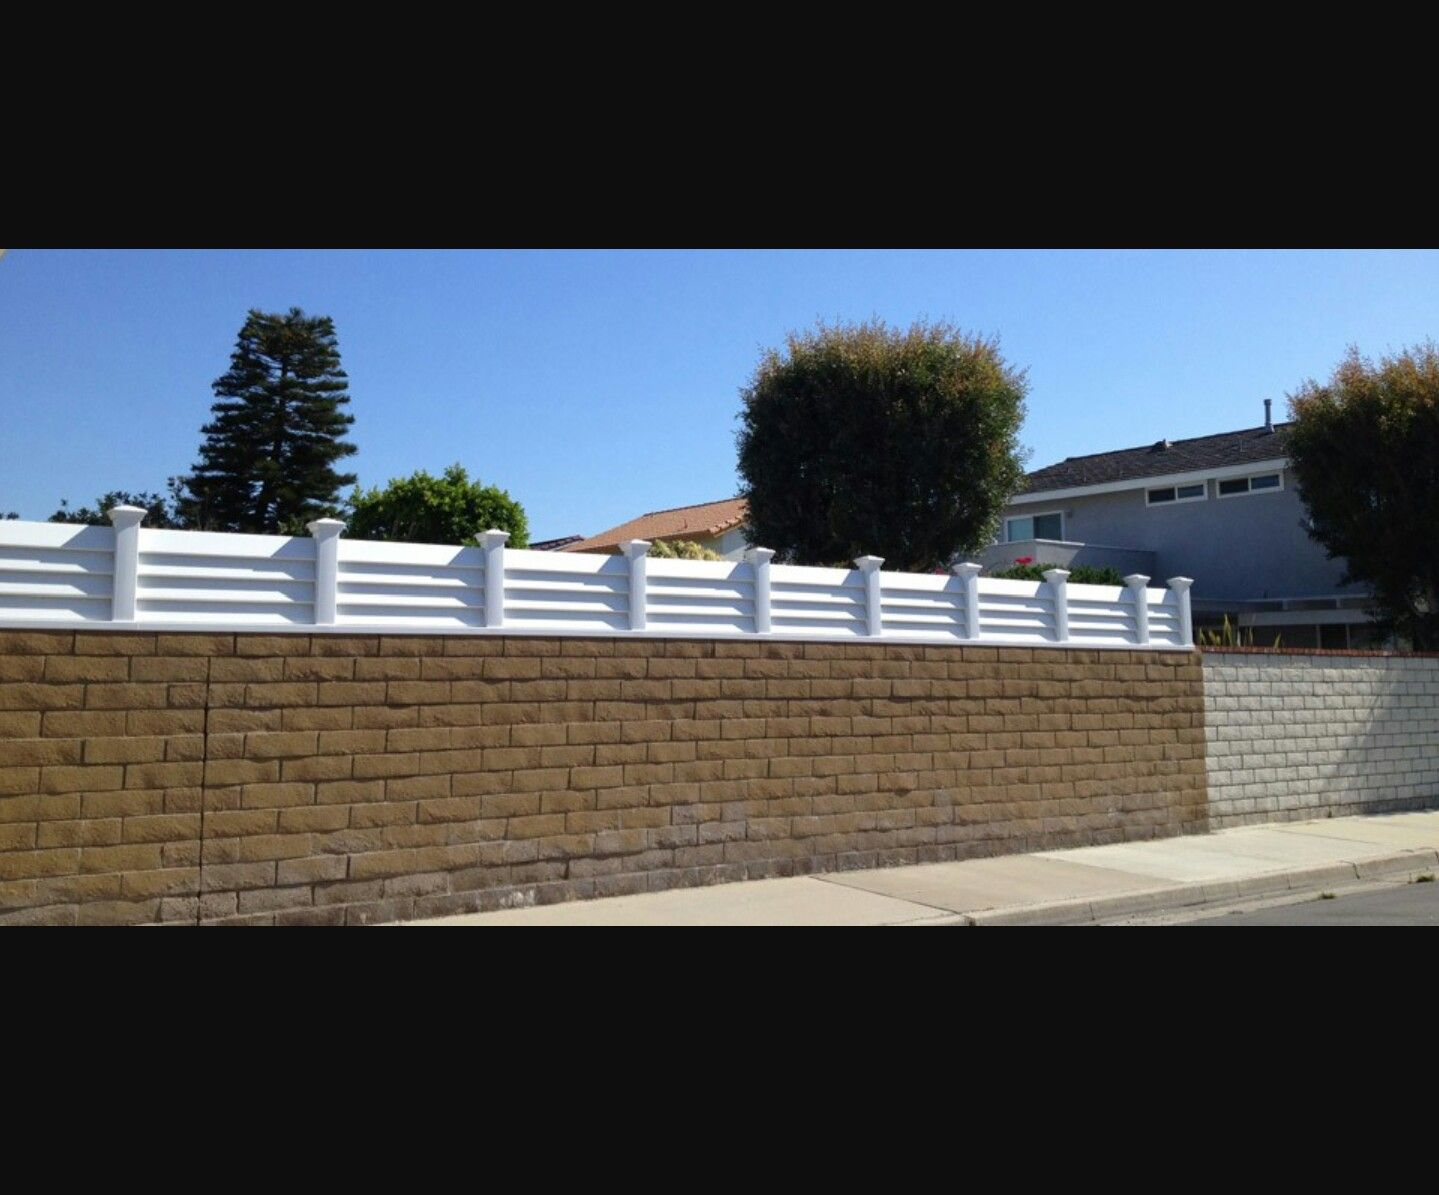 Block wall, fence toppers | Fence toppers, Patio fence